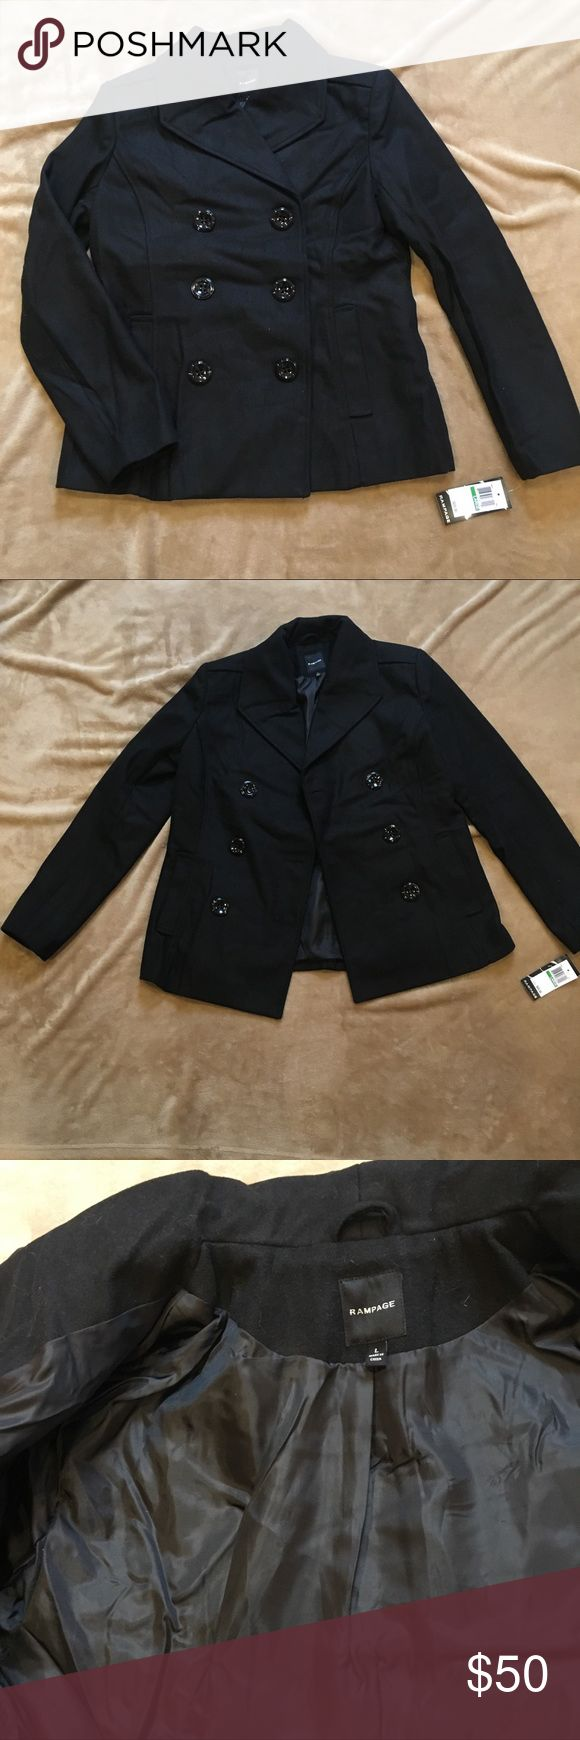 """Rampage black pea coat 🖤 Simple and chic. Measures 17"""" across shoulders. 100% polyester. Rampage Jackets & Coats Pea Coats"""